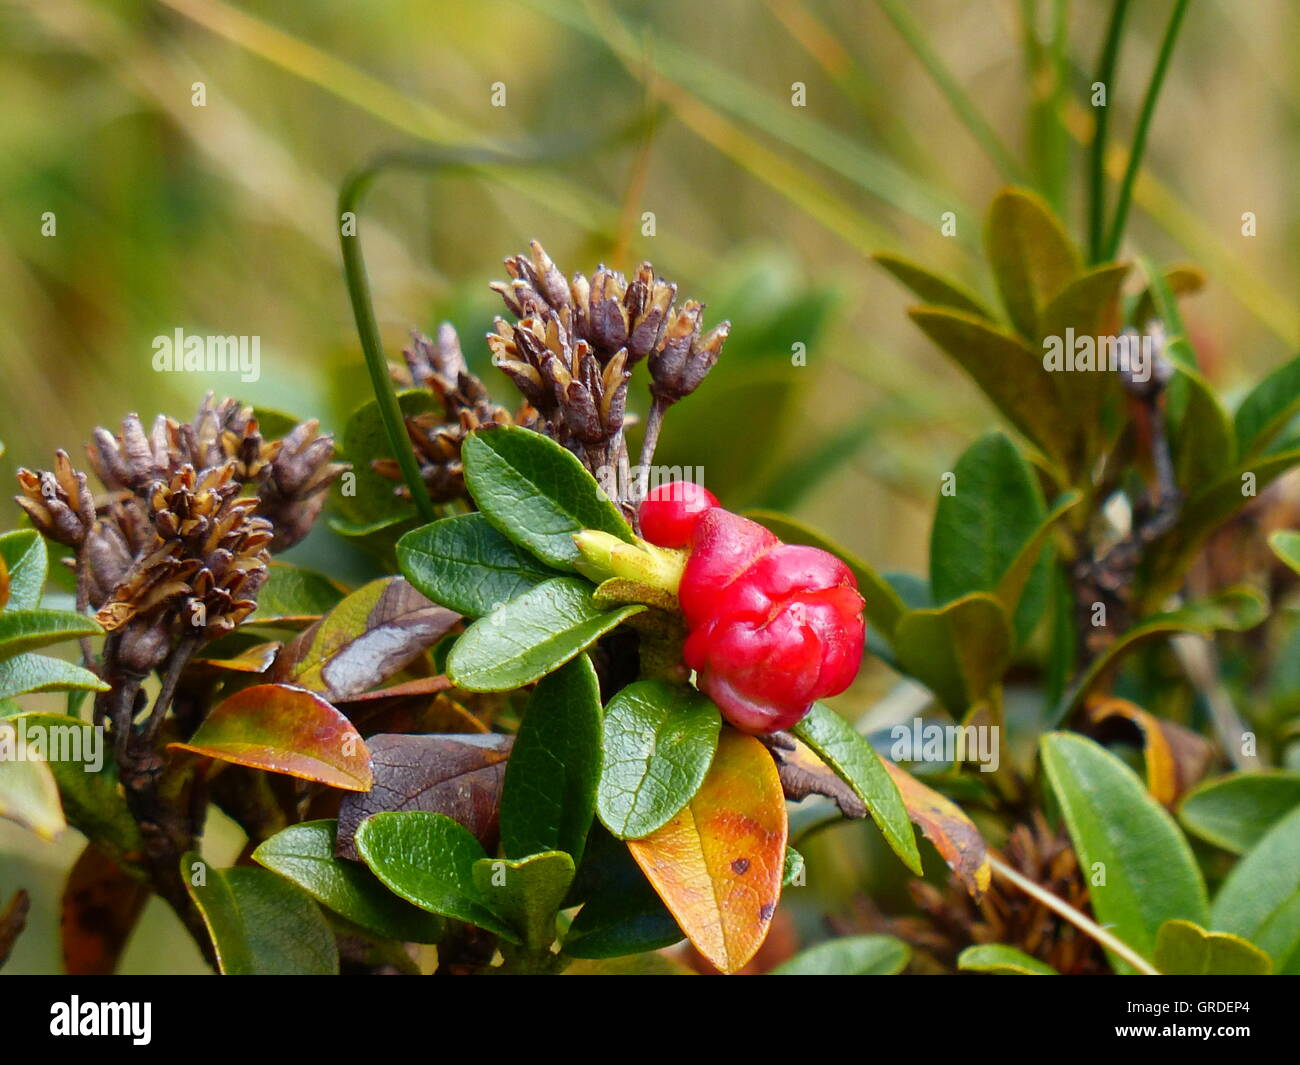 Lingonberry, Mountain Cranberry - Stock Image